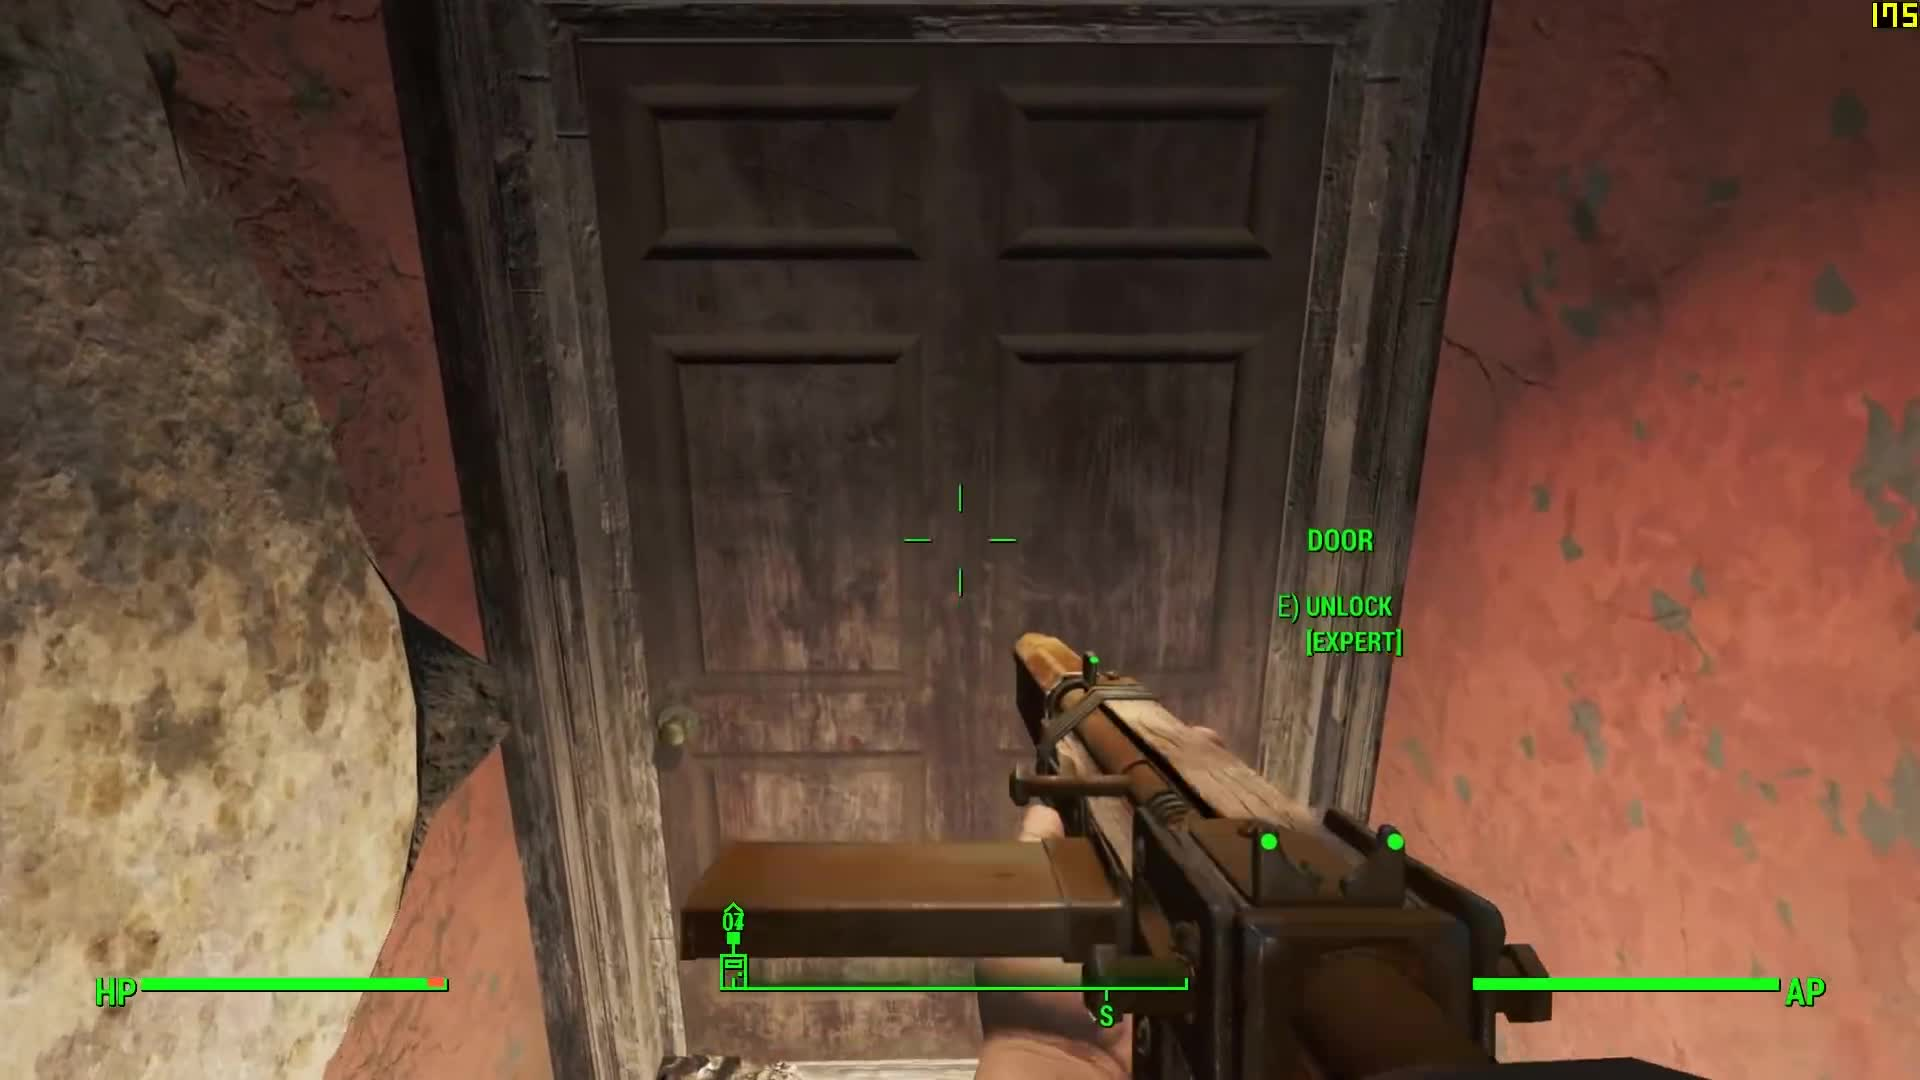 Action Role-playing Game (Video Game Genre), Fallout (Video Game Series), First-person Shooter (Media Genre), fallout 4, fps, lock picking, lockpicking, physics, Fallout 4 lock picking at 600+ fps GIFs